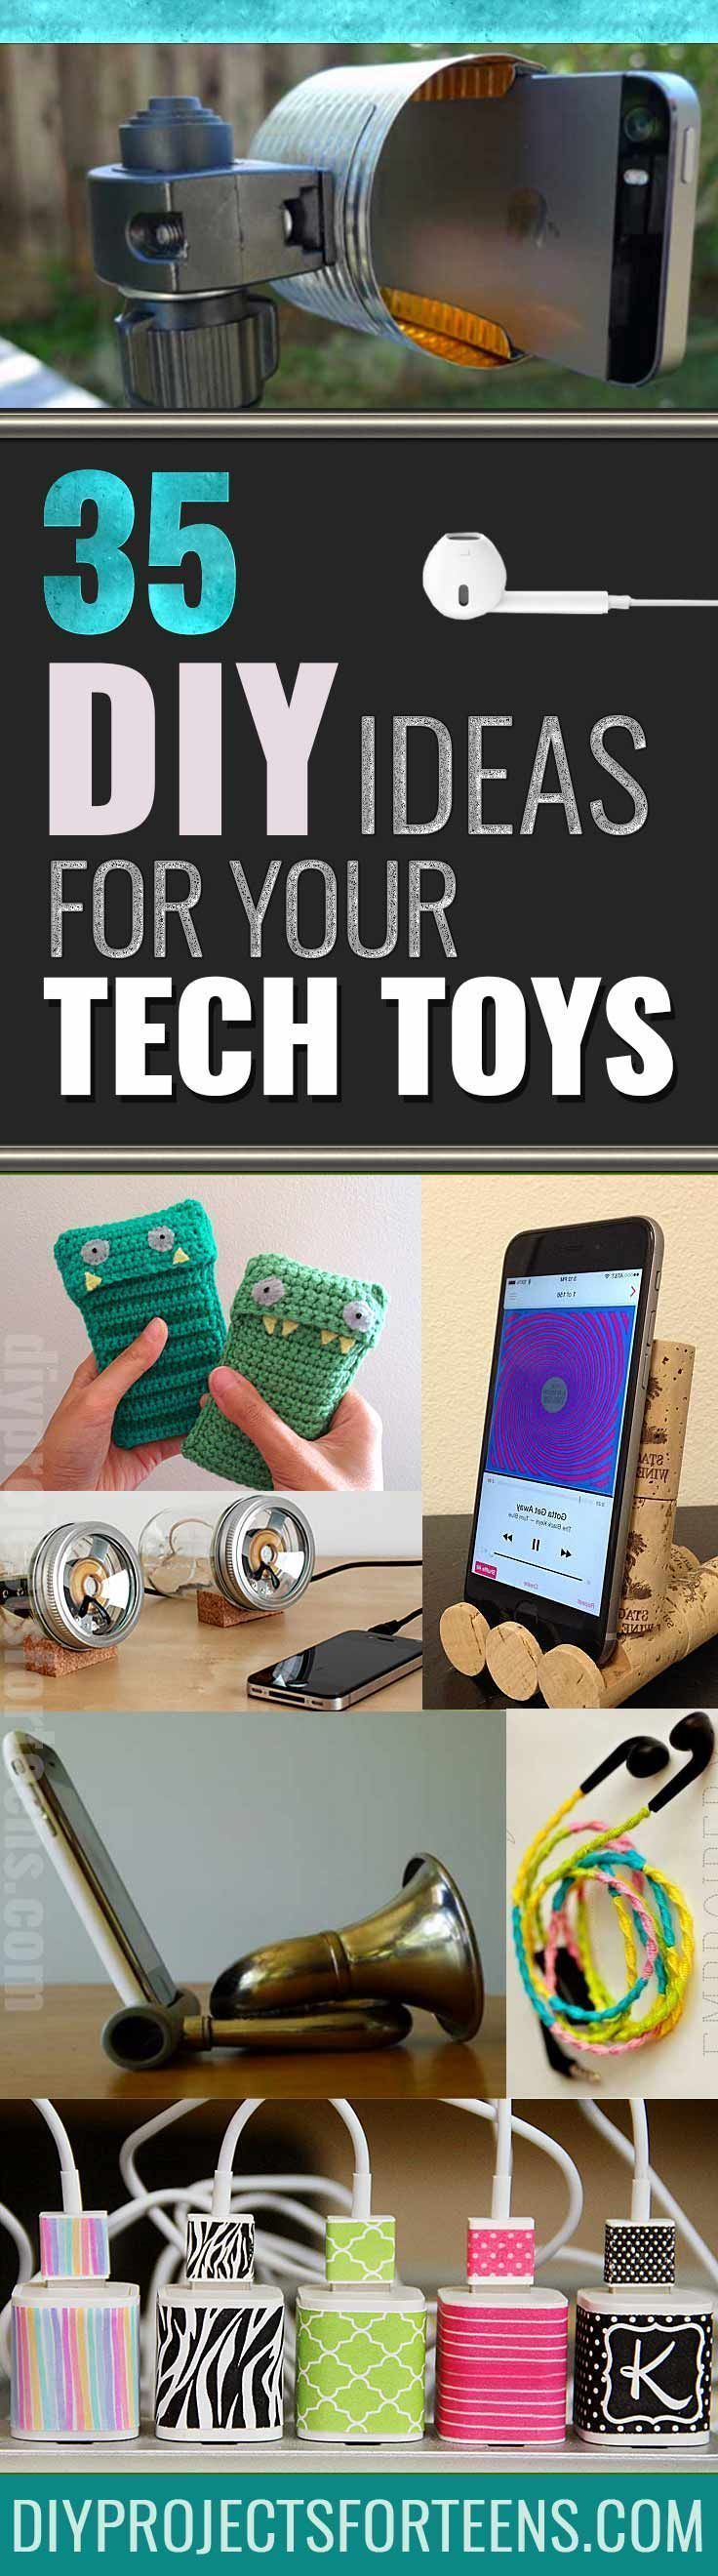 Awesome DIYs for your Tech Toys 4150